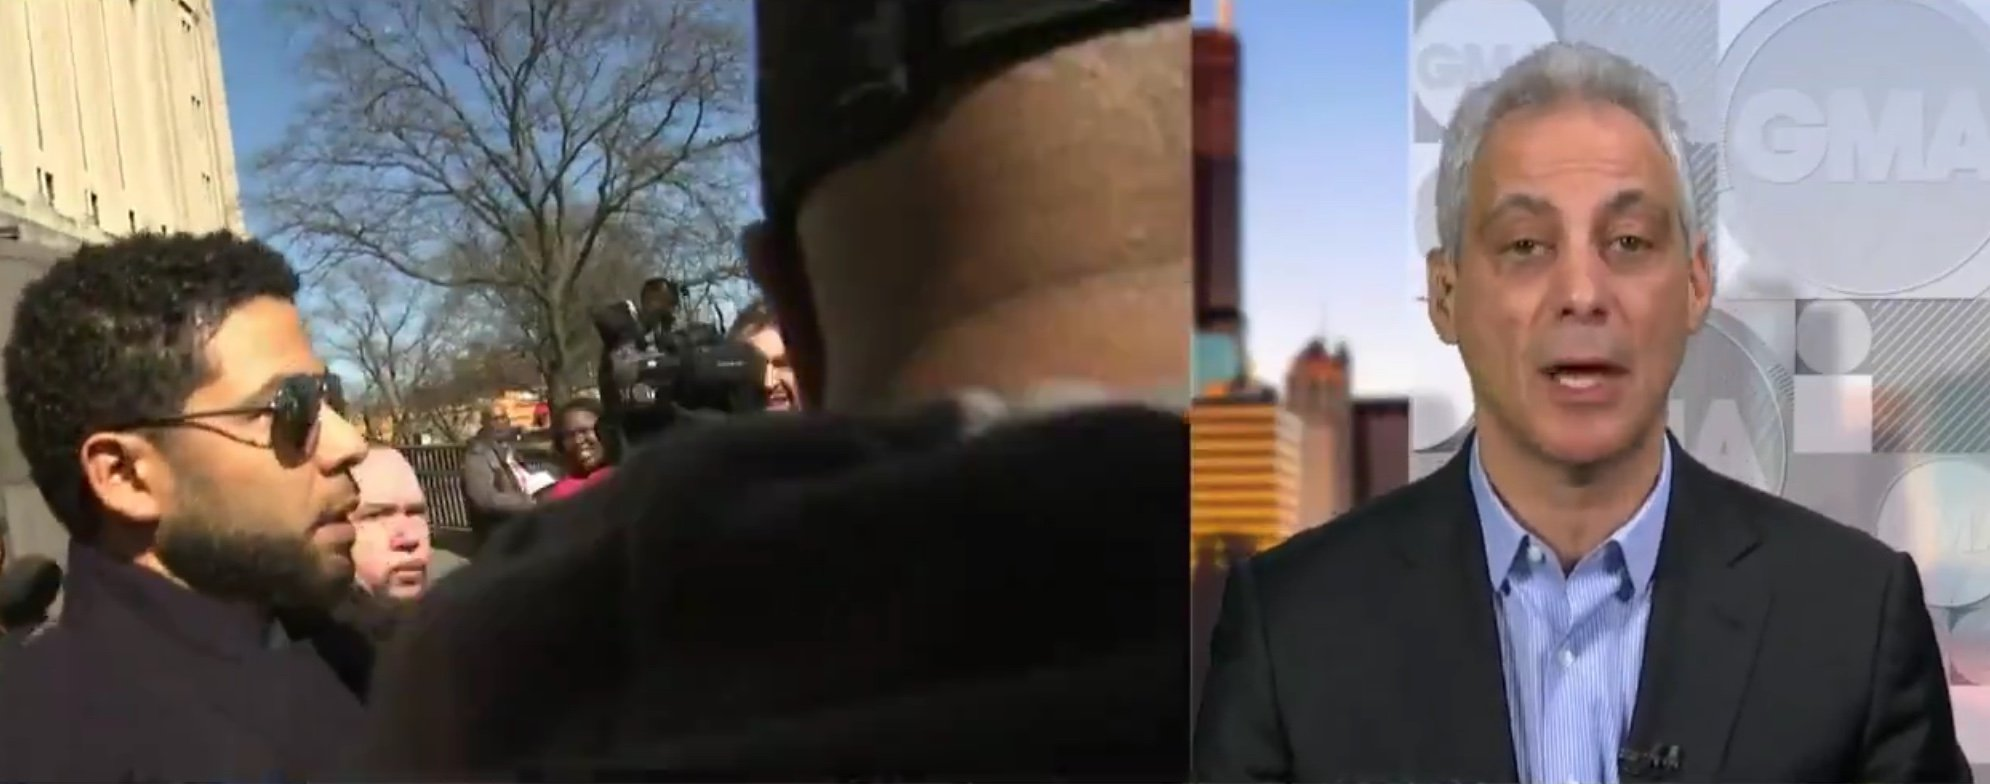 "Chicago Mayor Rahm Emanuel talks to ""Good Morning America"" about the Jussie Smollett decision, March 27, 2019. ABC News screencapture via Twitter."